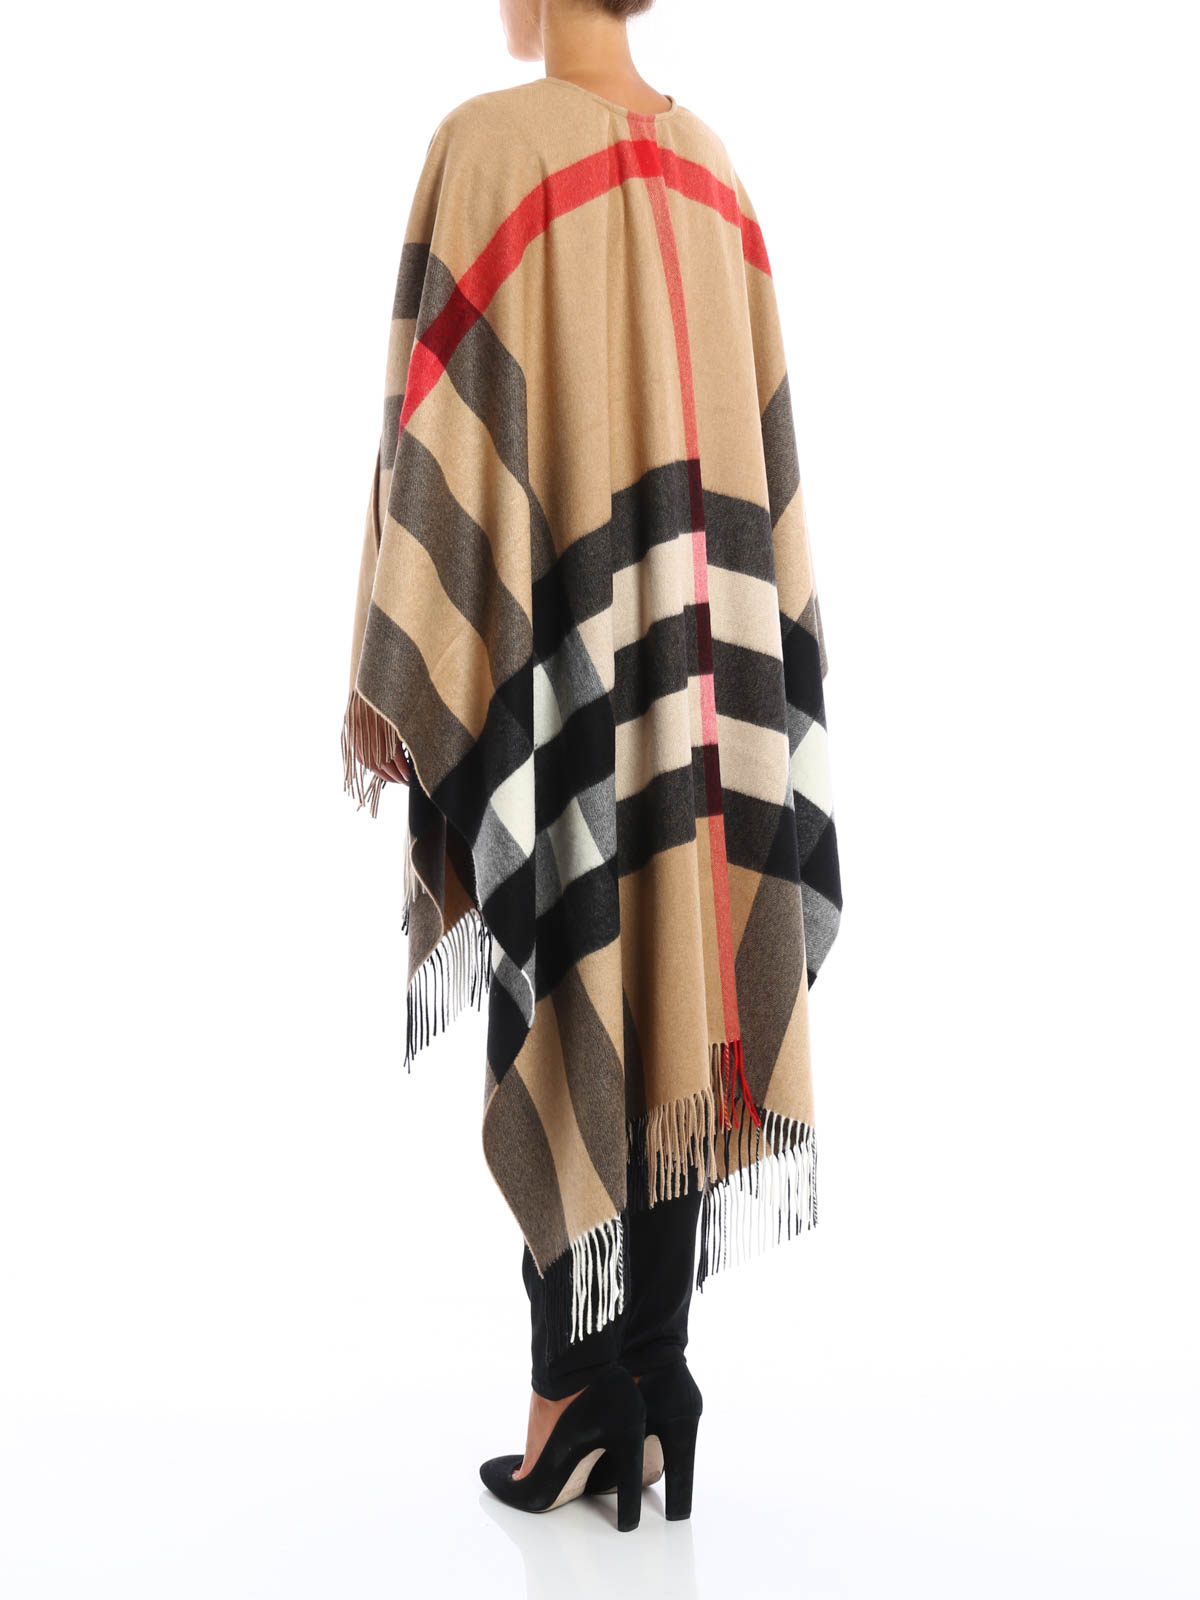 Buy Ponchos Online in Australia, Compare Prices of Products from 30 Stores. Lowest Price is. Save with fefdinterested.gq!